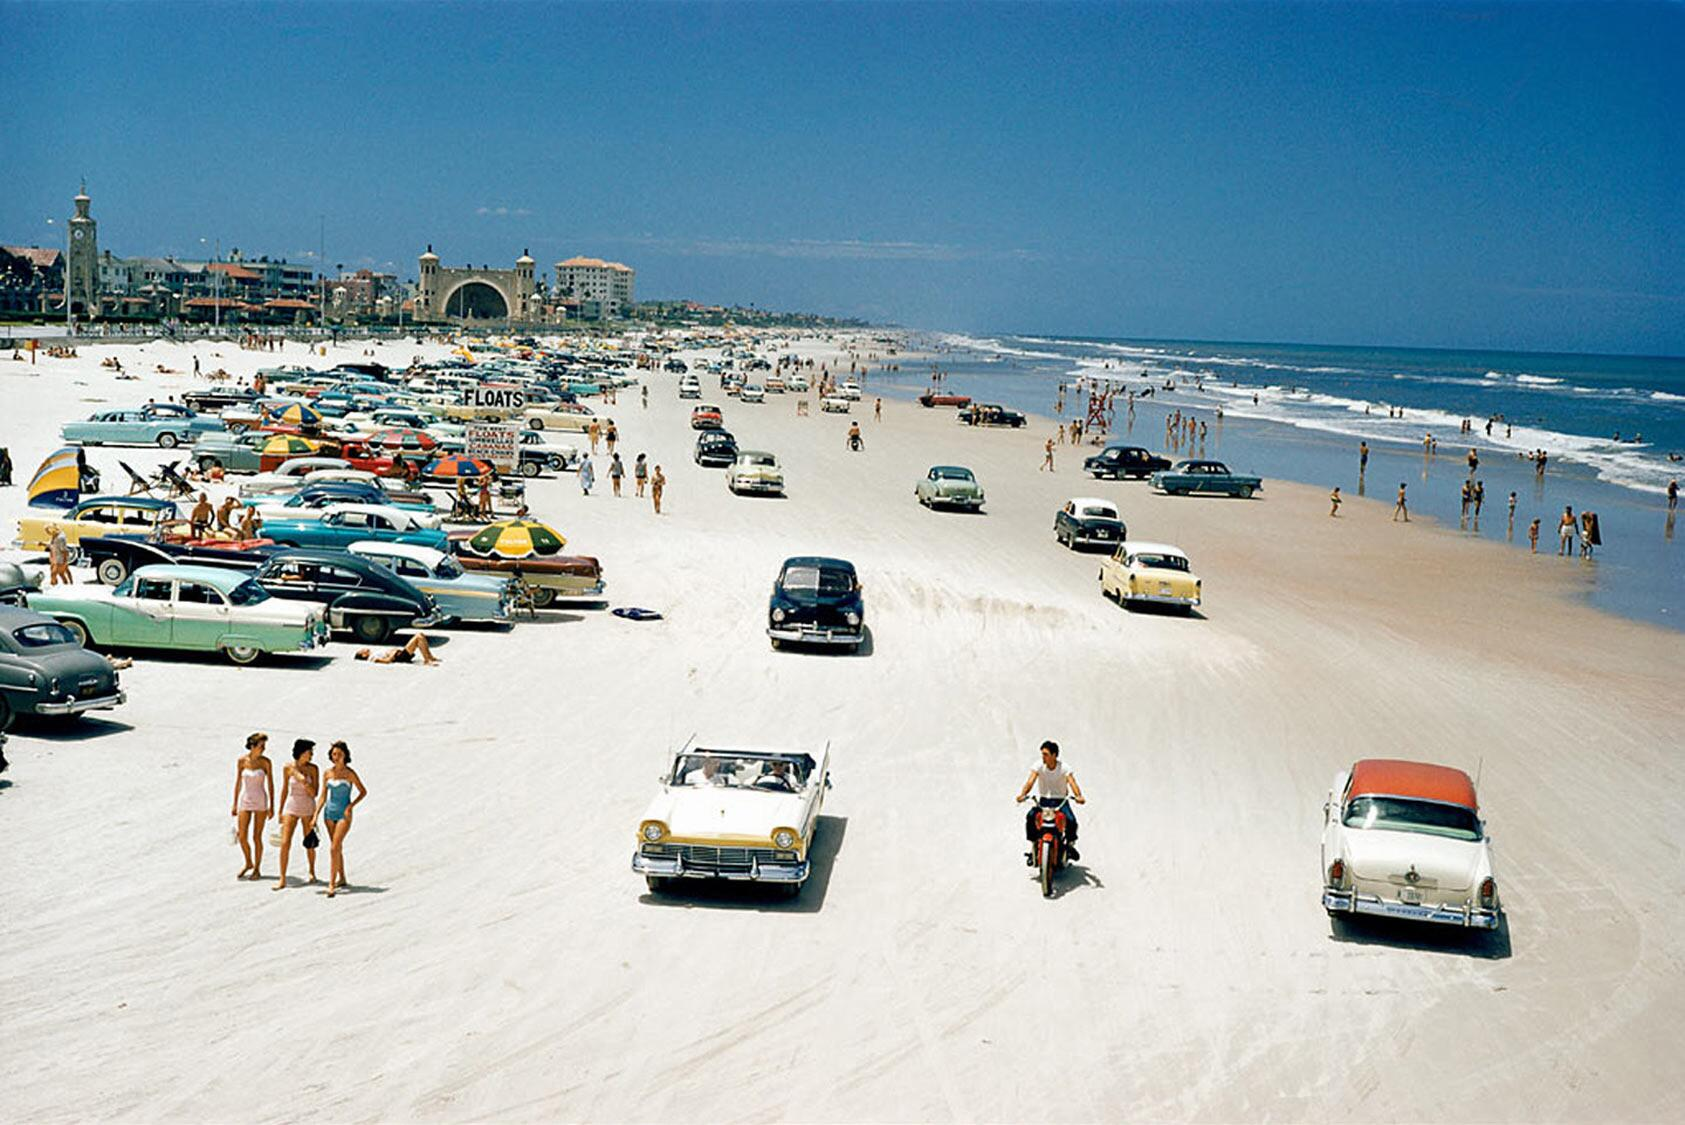 Daytona Beach, 1957 http://t.co/ZpR80BhQNQ